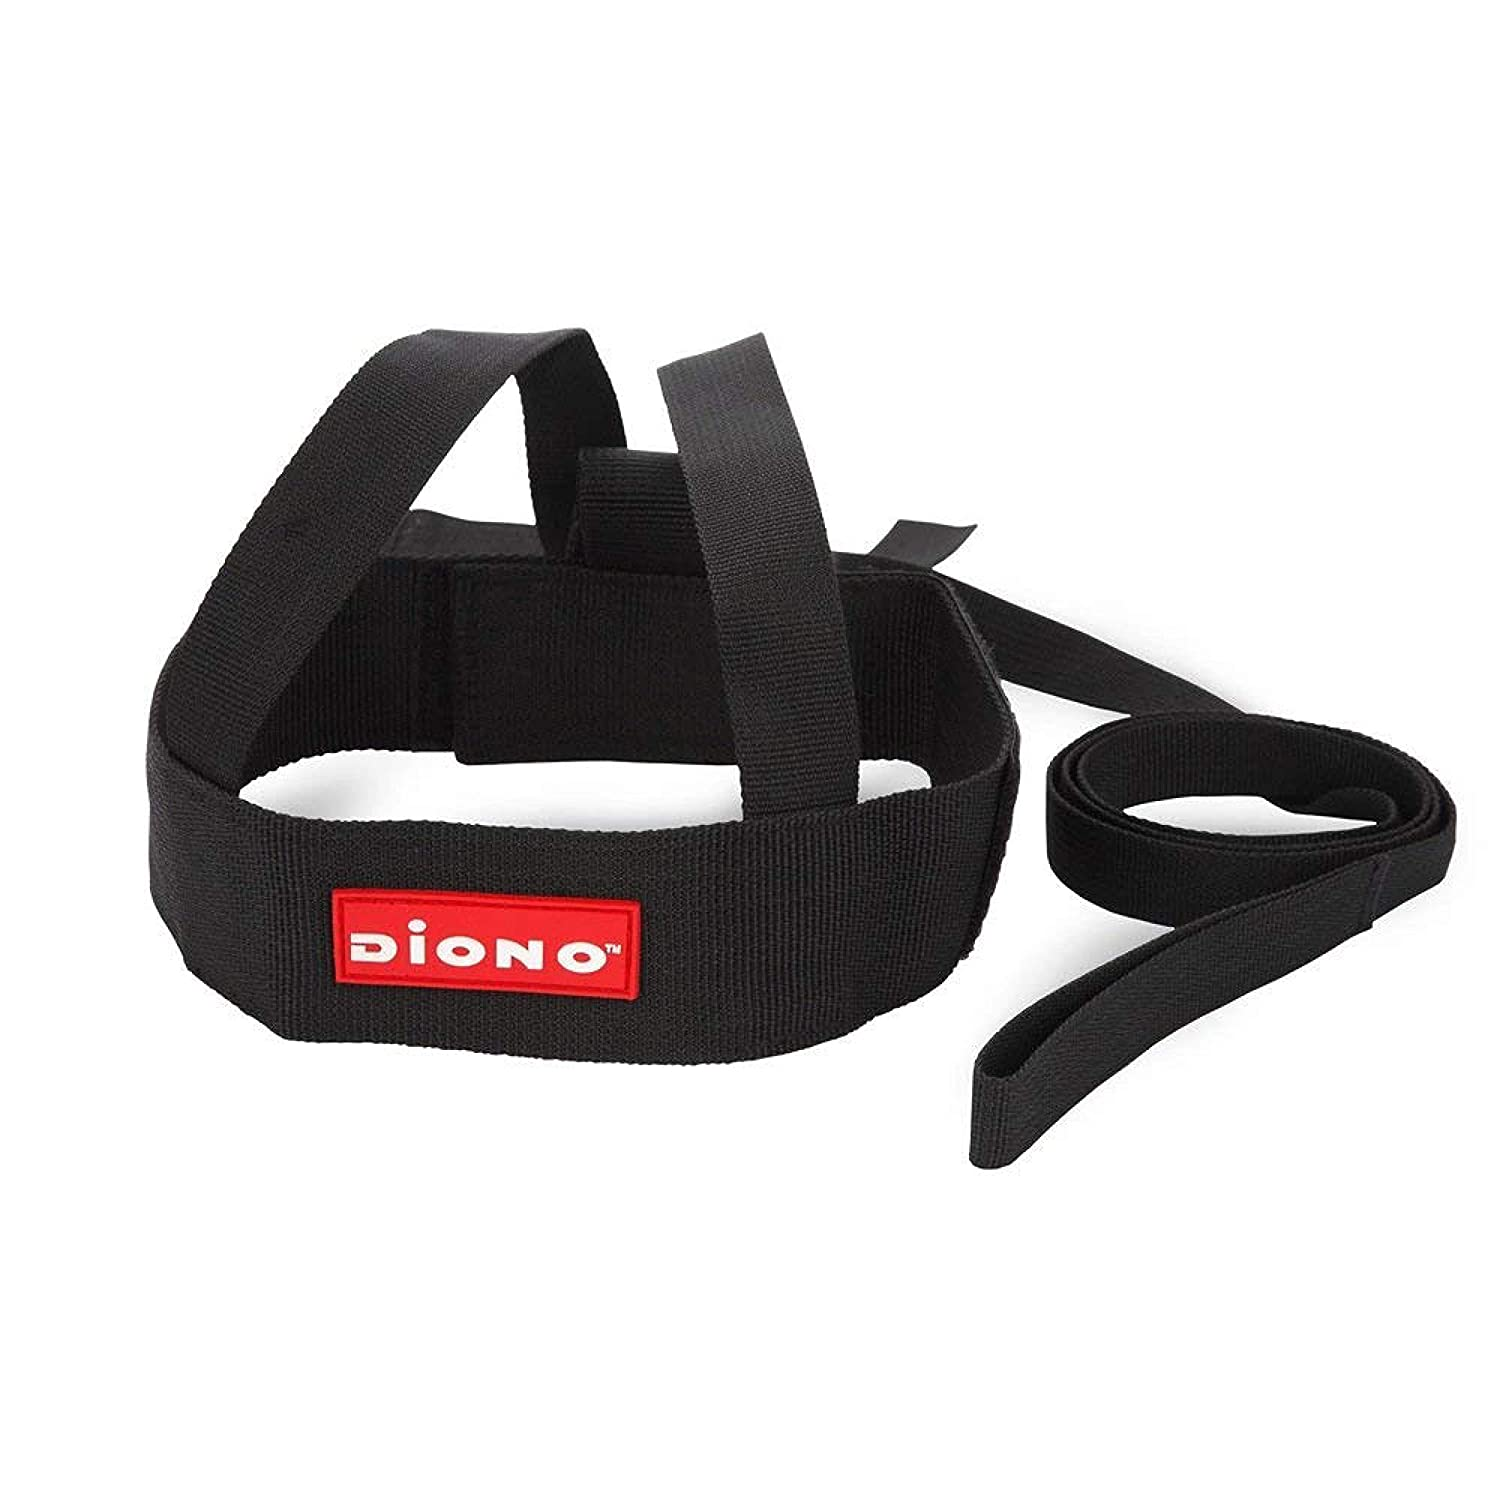 Diono Sure Steps Child Harness, For Children from 2-4 Years of Age, Black 40177-EU-01